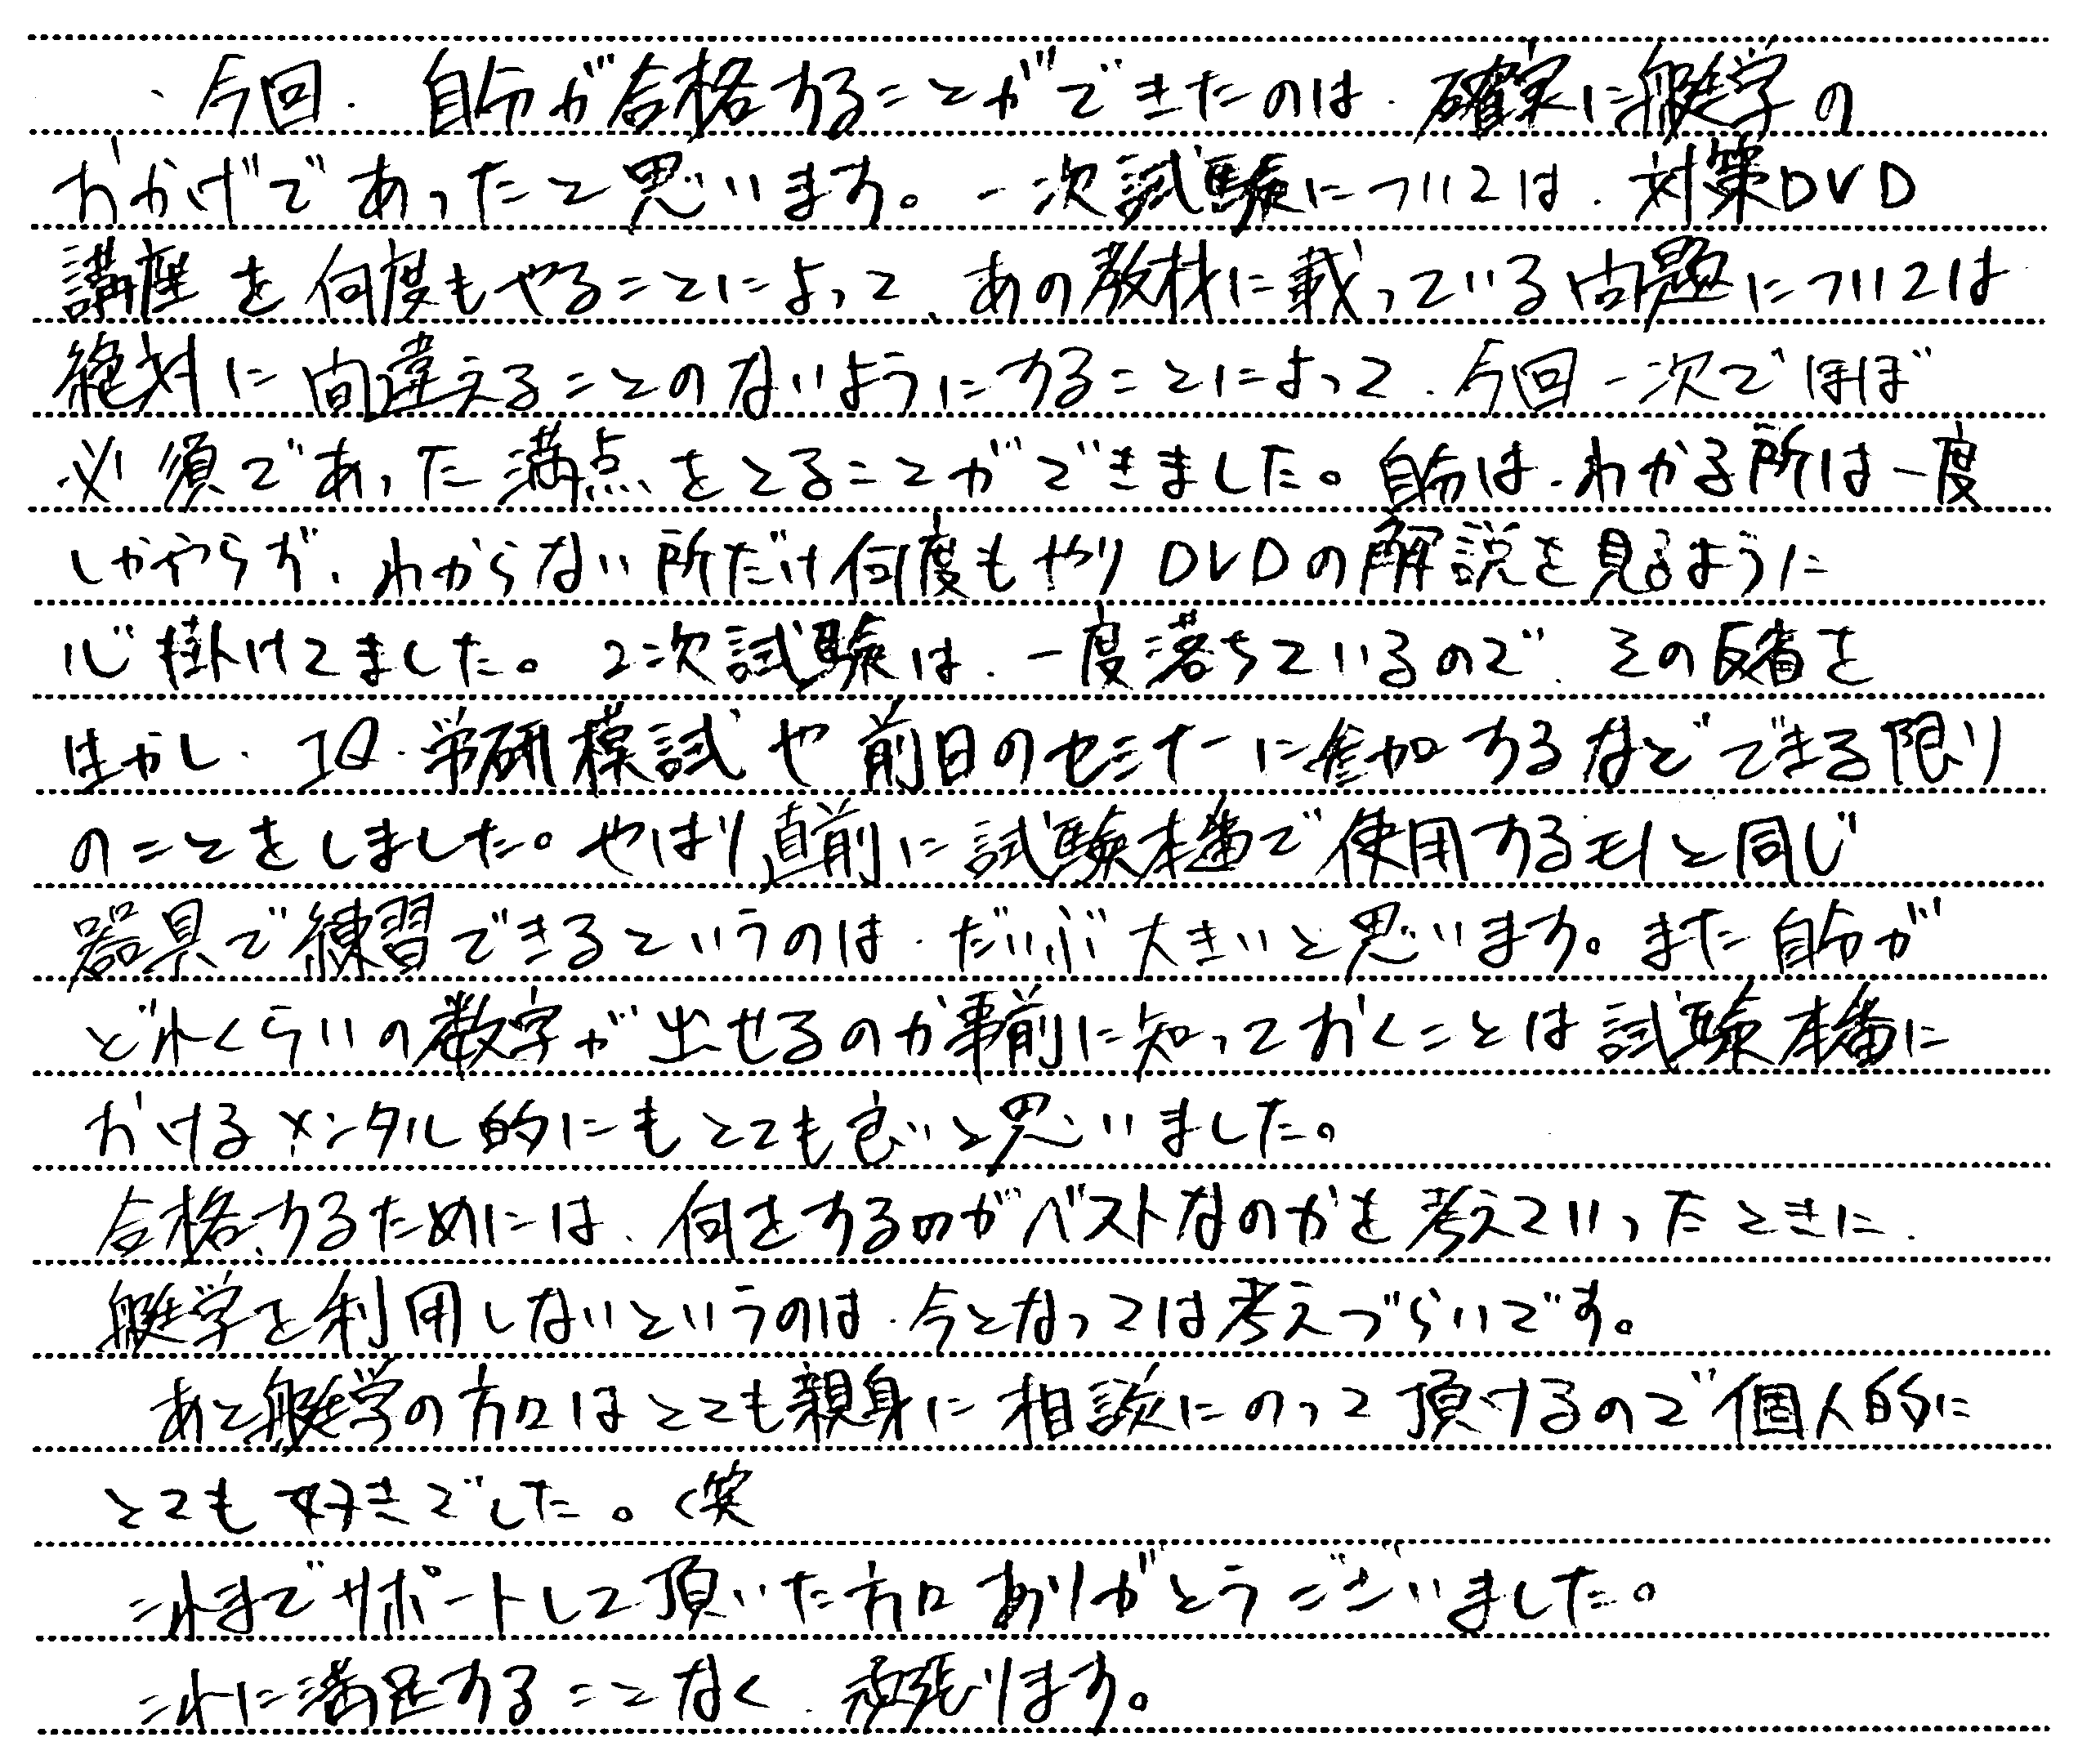 20130205094756270.png